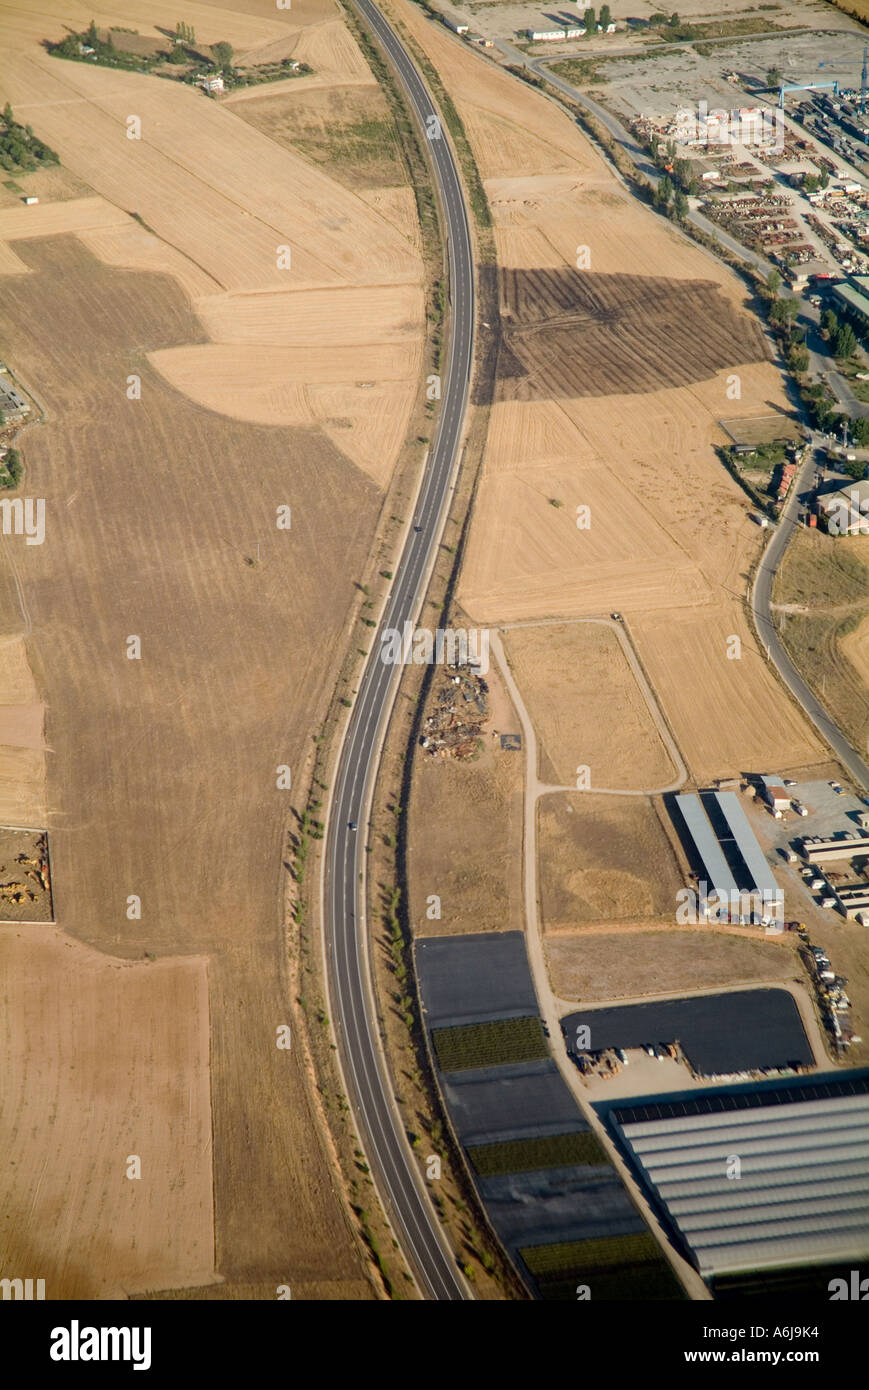 Aerial view of a highway near Madrid in Spain, Europe - Stock Image